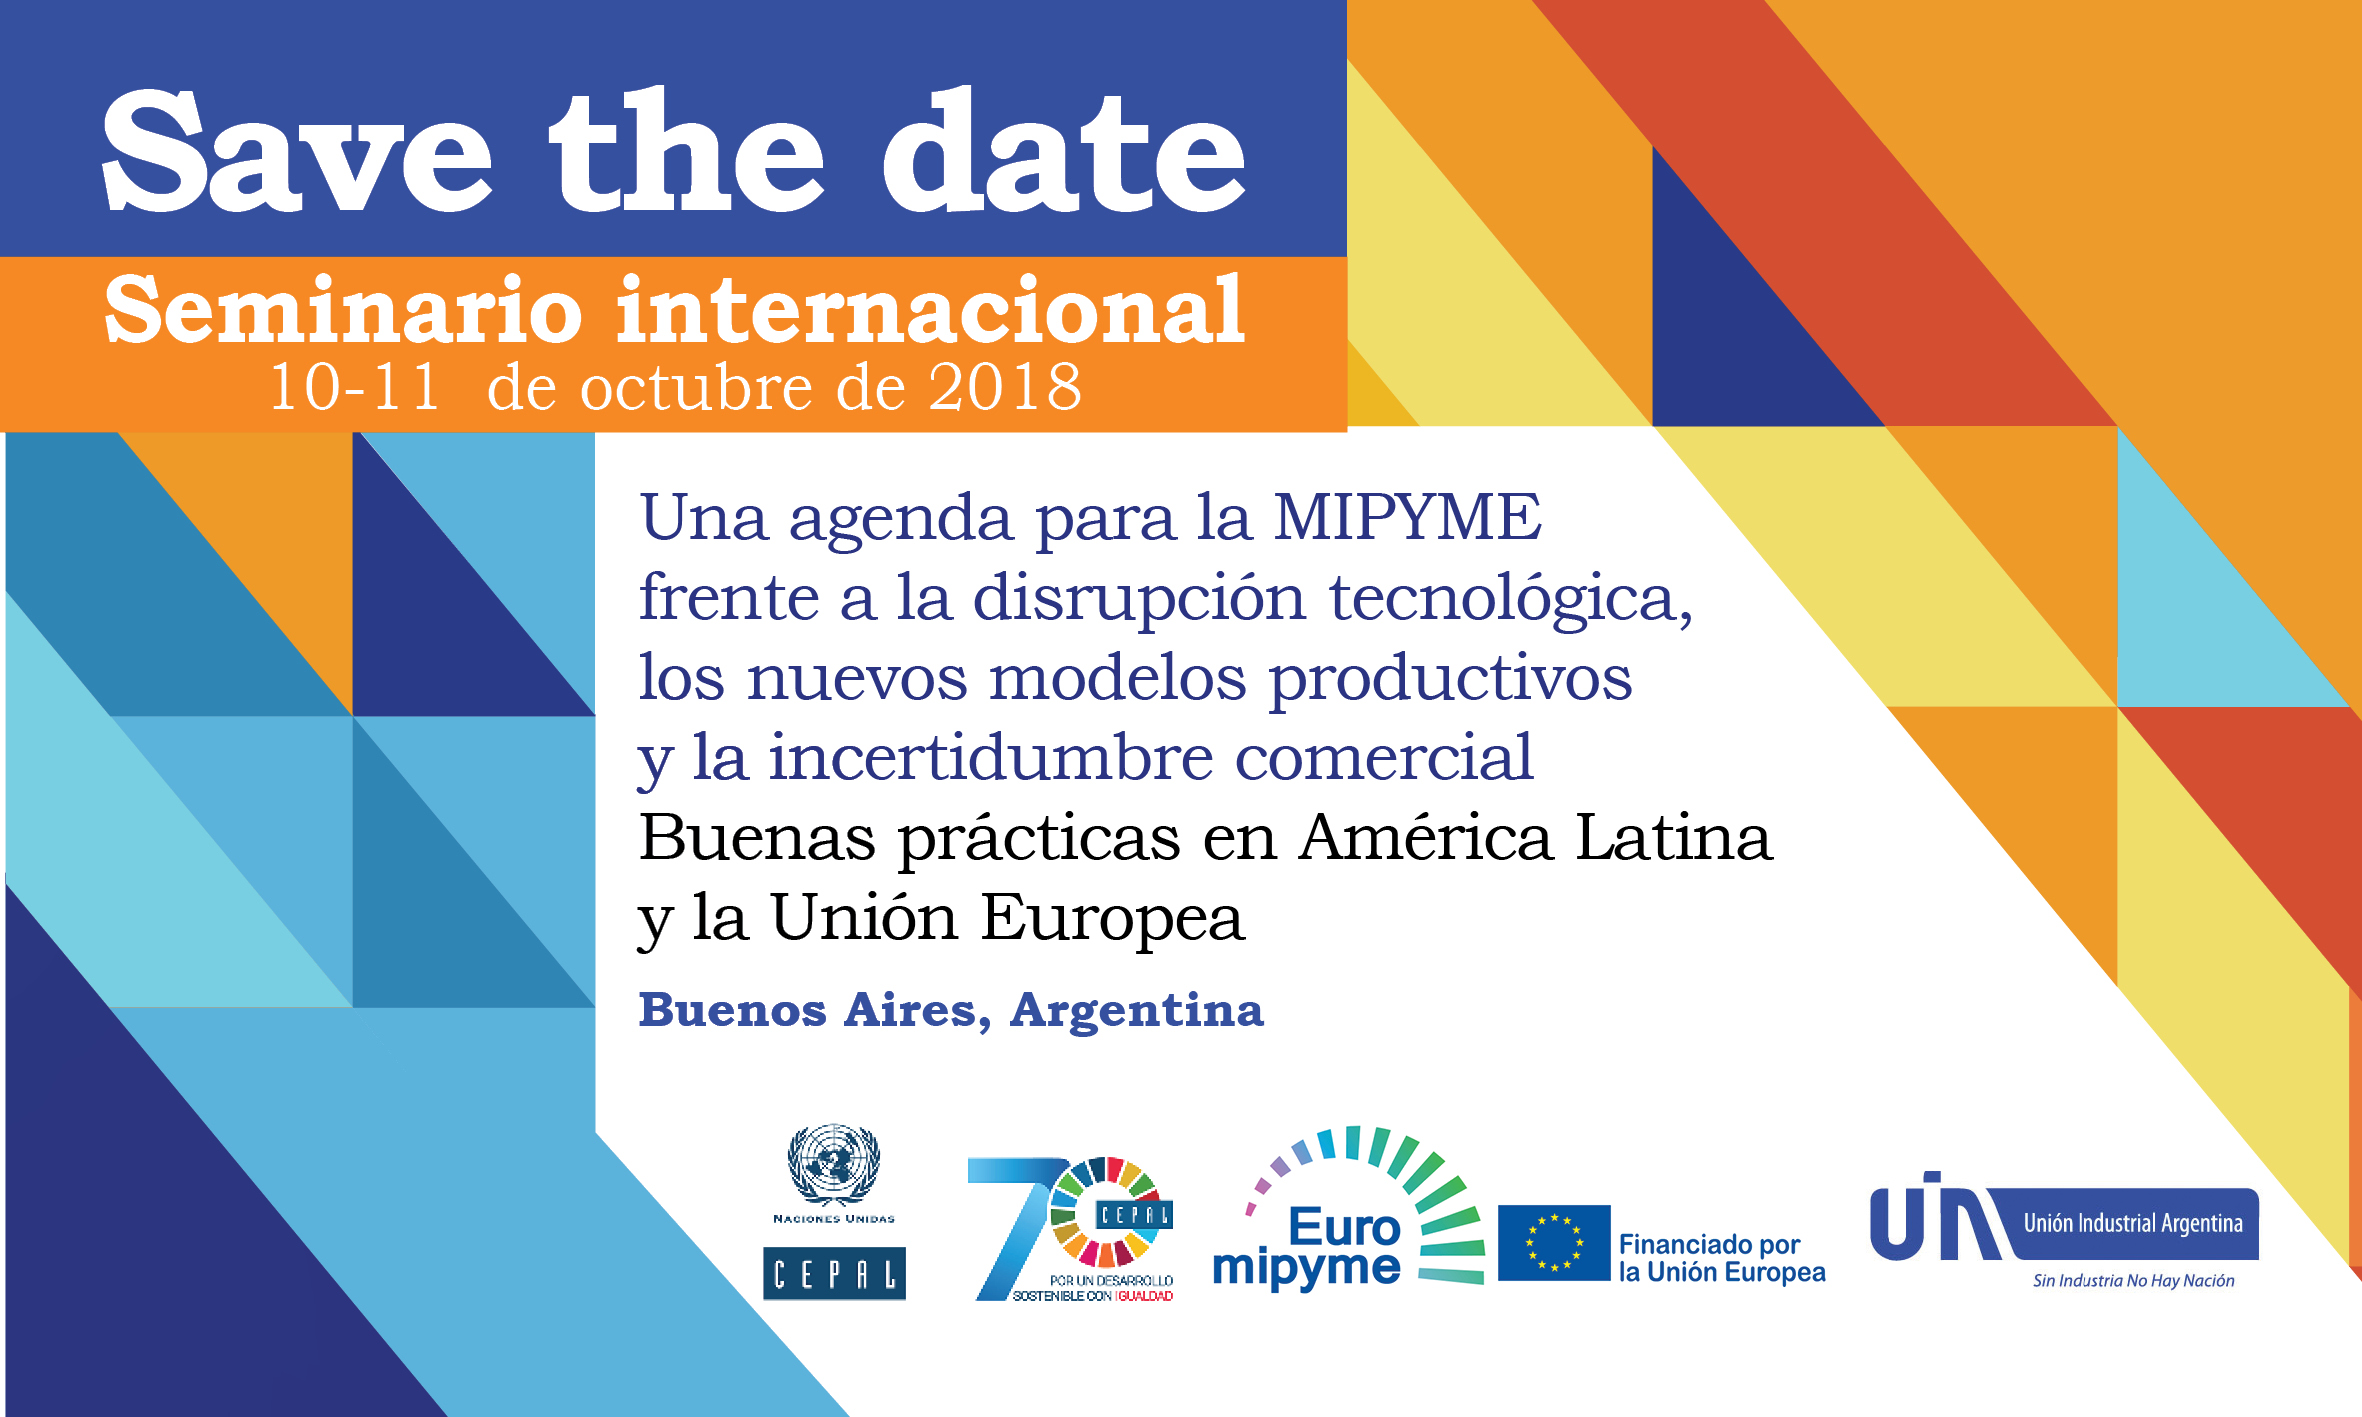 Save the date seminario MIPYME